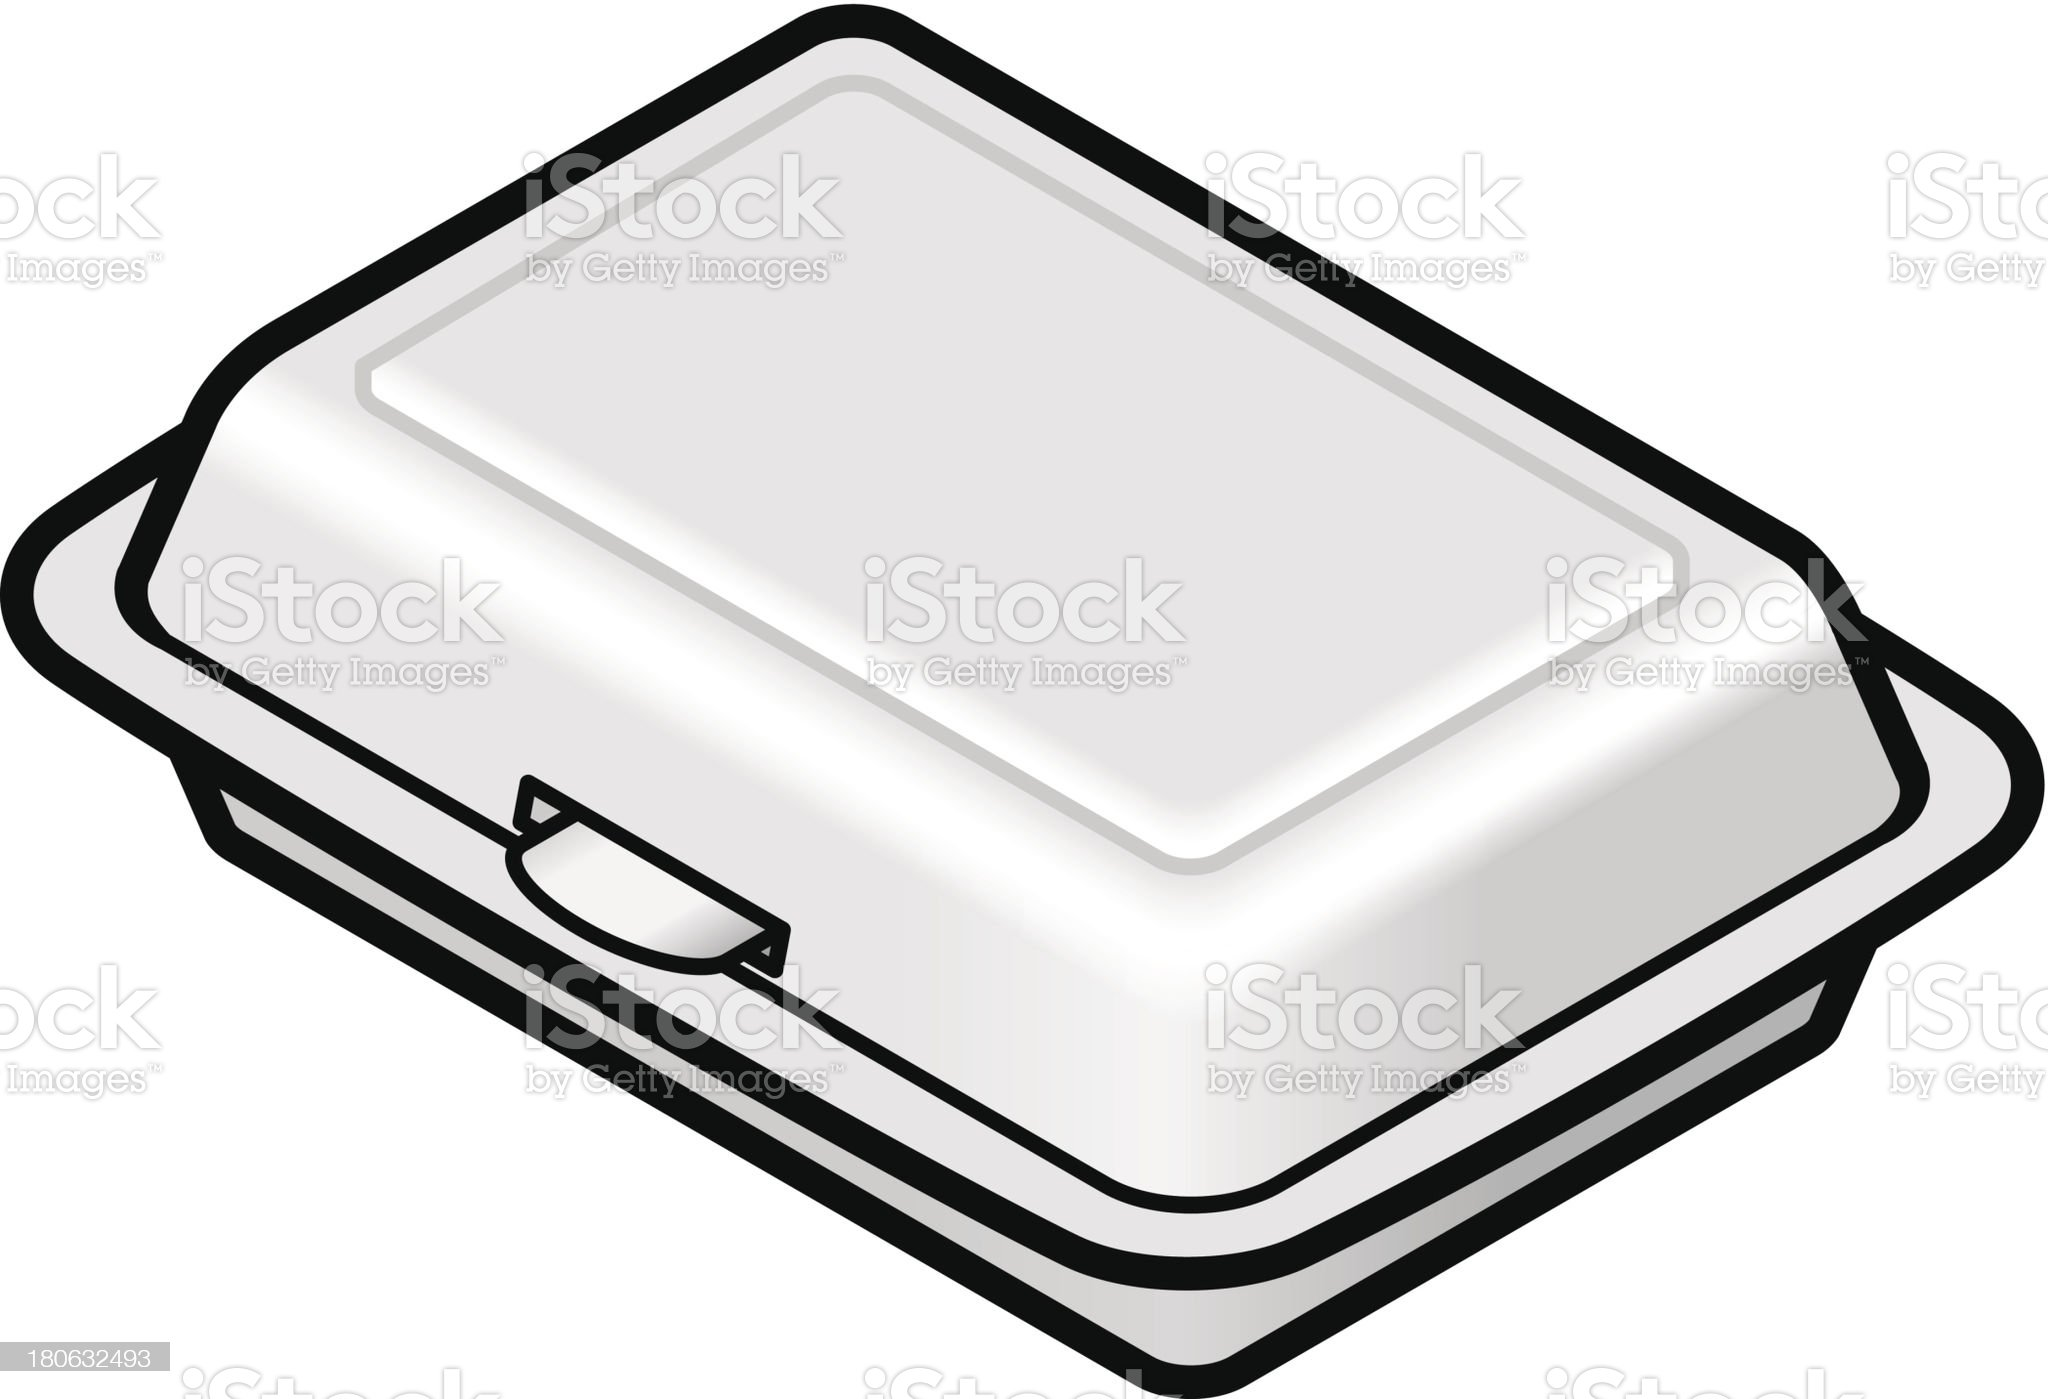 Styrofoam container royalty-free stock vector art